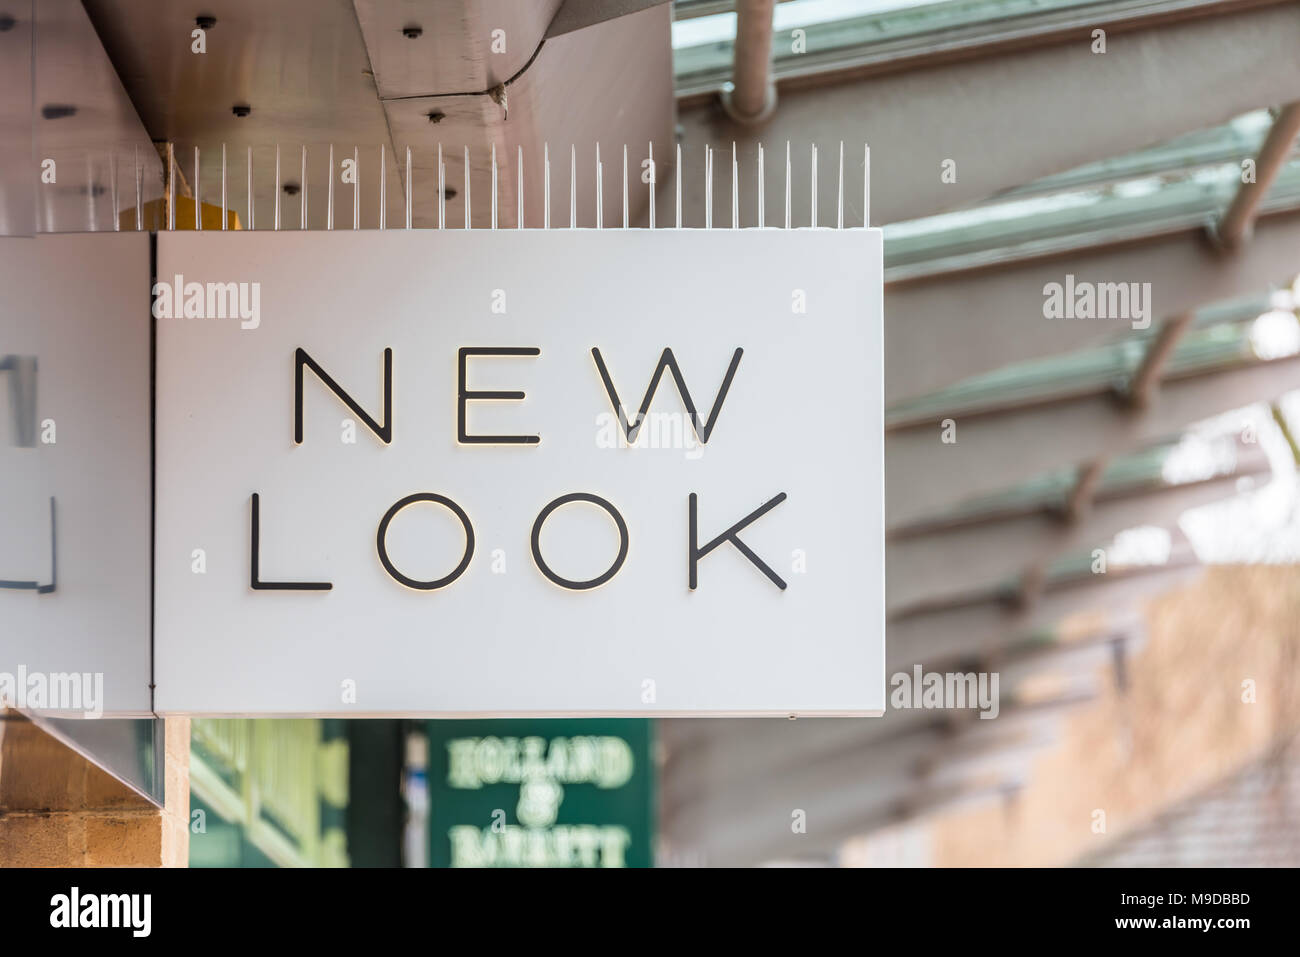 Daventry UK March 13 2018: New Look logo sign on the shopfront of retail outlet in the UK - Stock Image